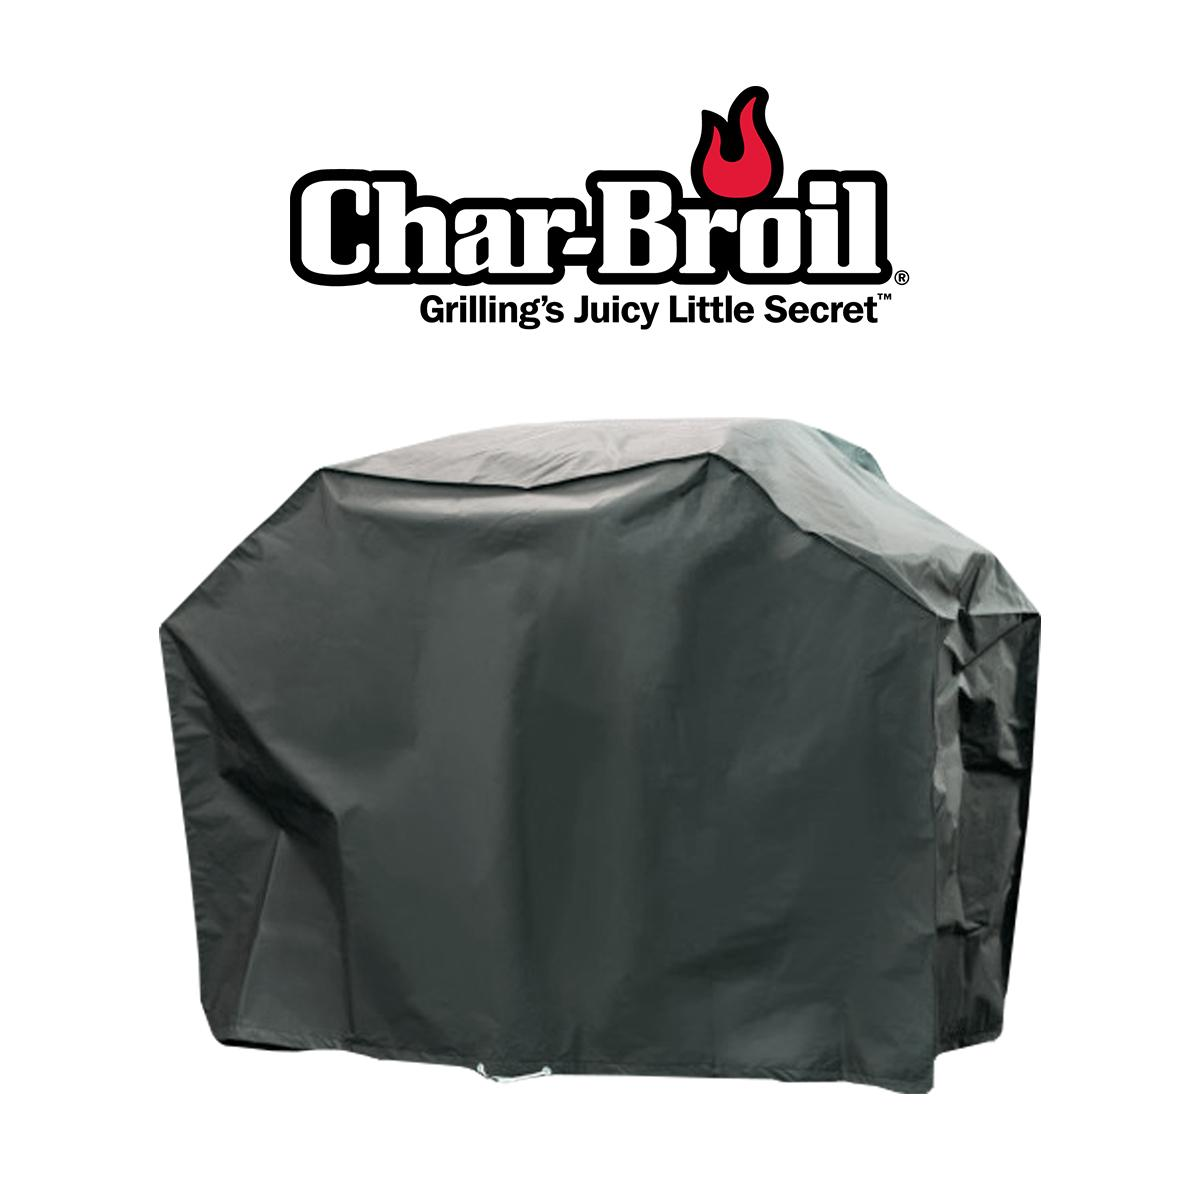 [Local Ready Stock] Char-Broil Universal BBQ 3 - 4 Burner Grill Protective Cover (62 Large)